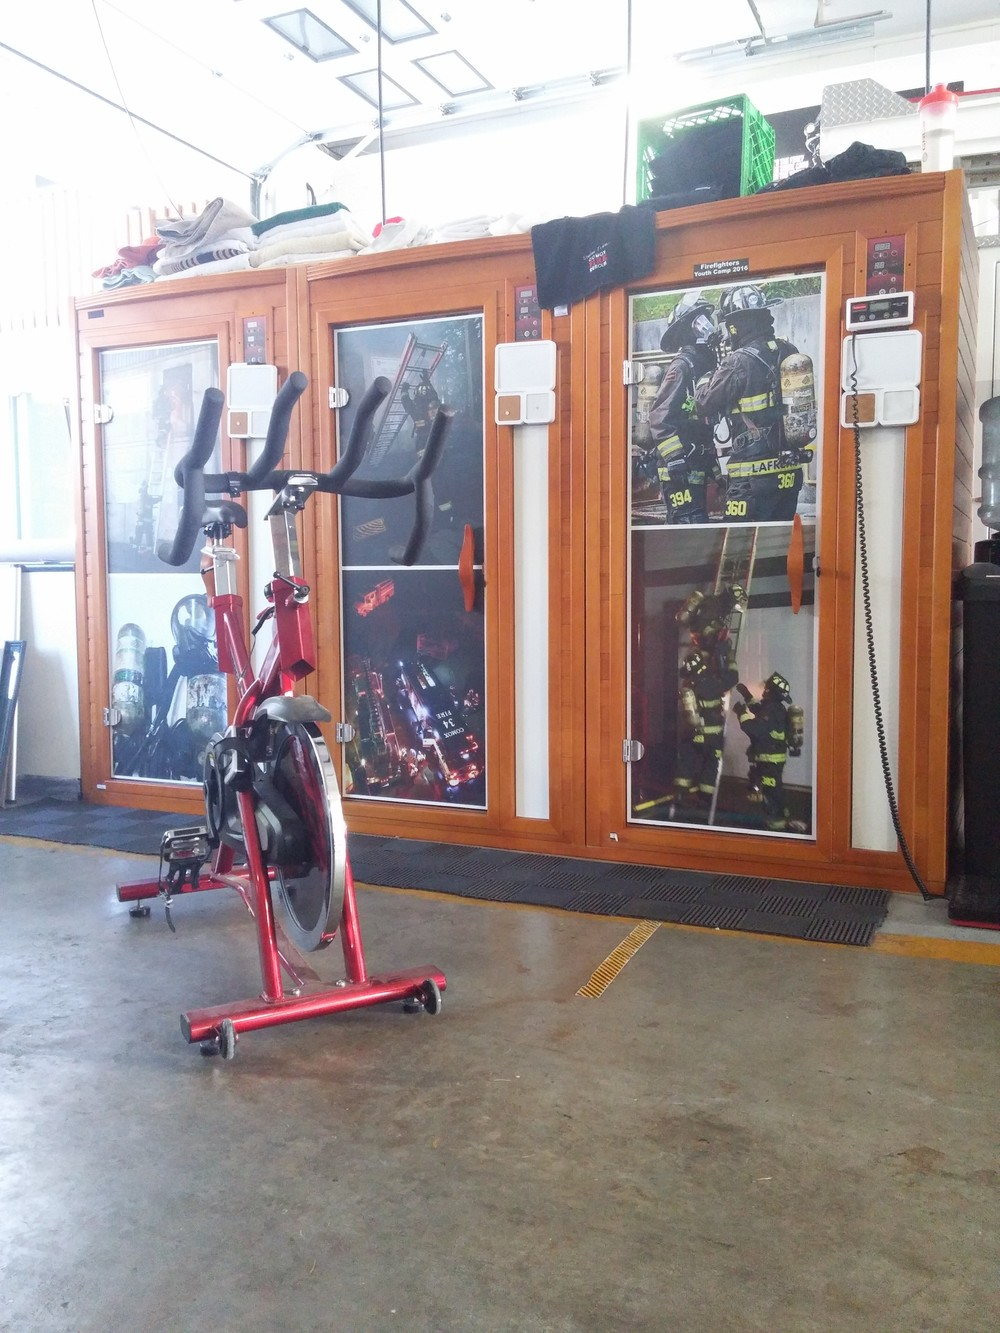 comox-fire-rescue-sauna-spin-bike.jpg